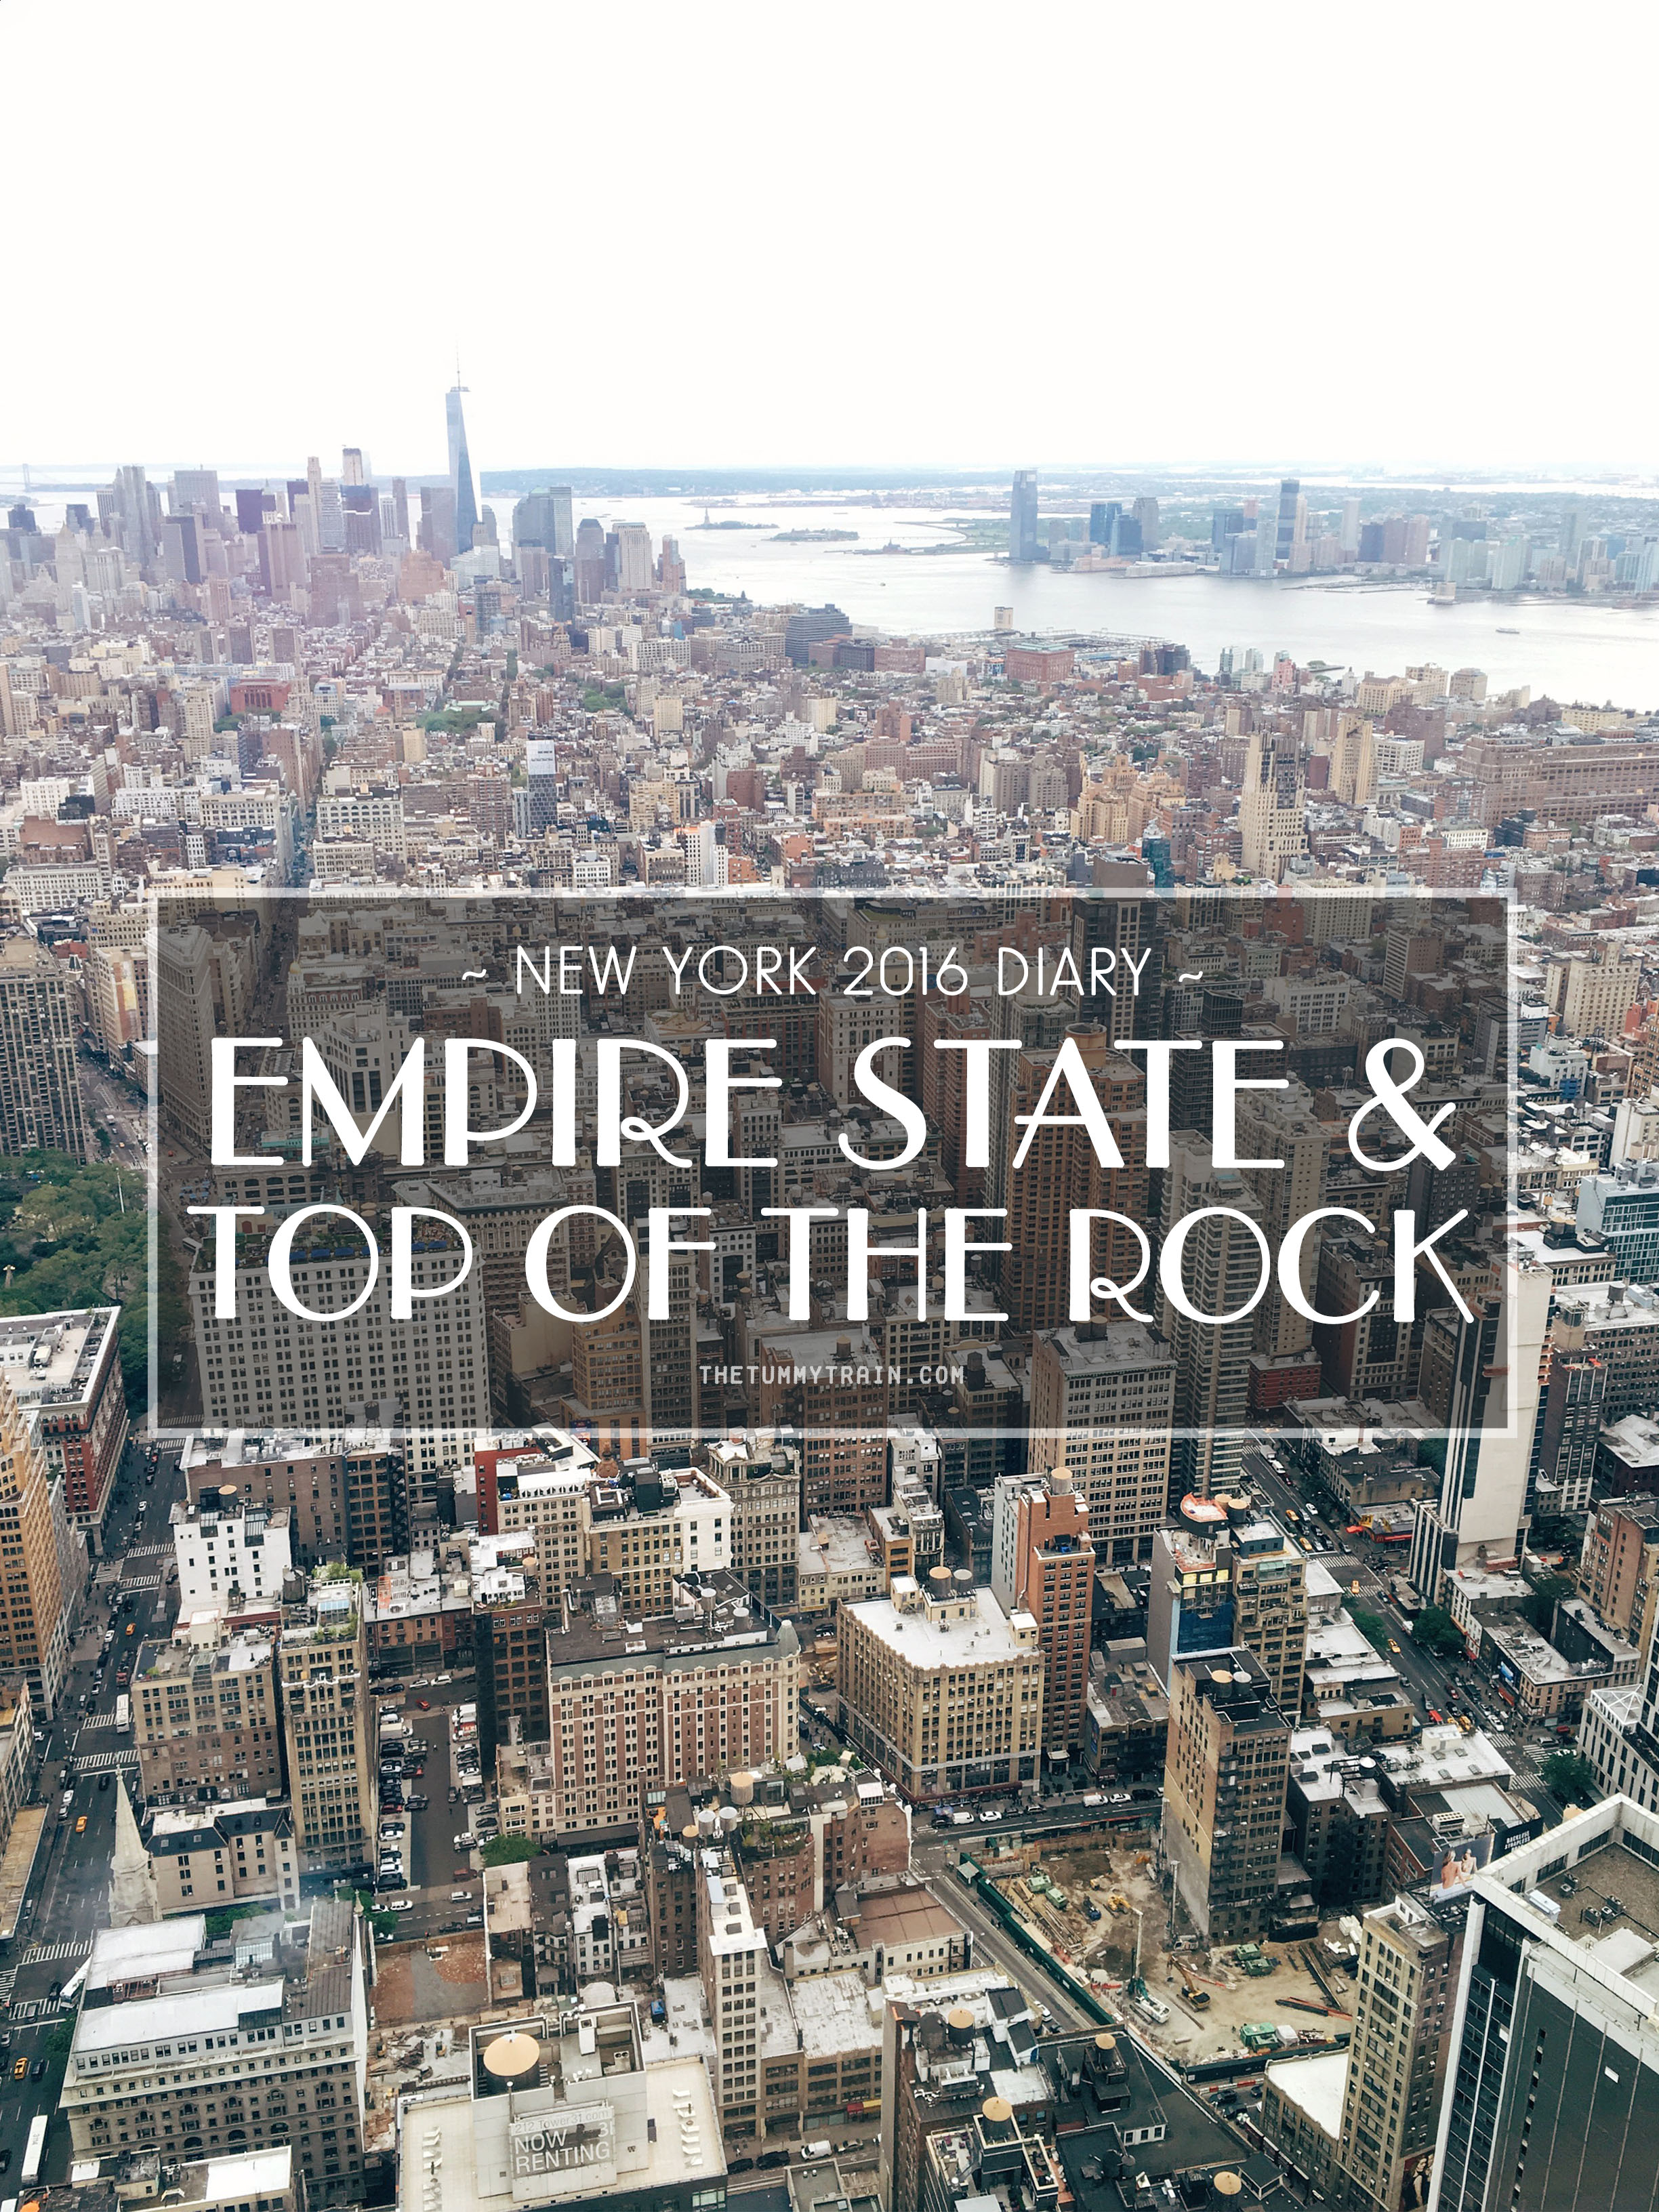 Is There A Restaurant At Top Of Empire State Building